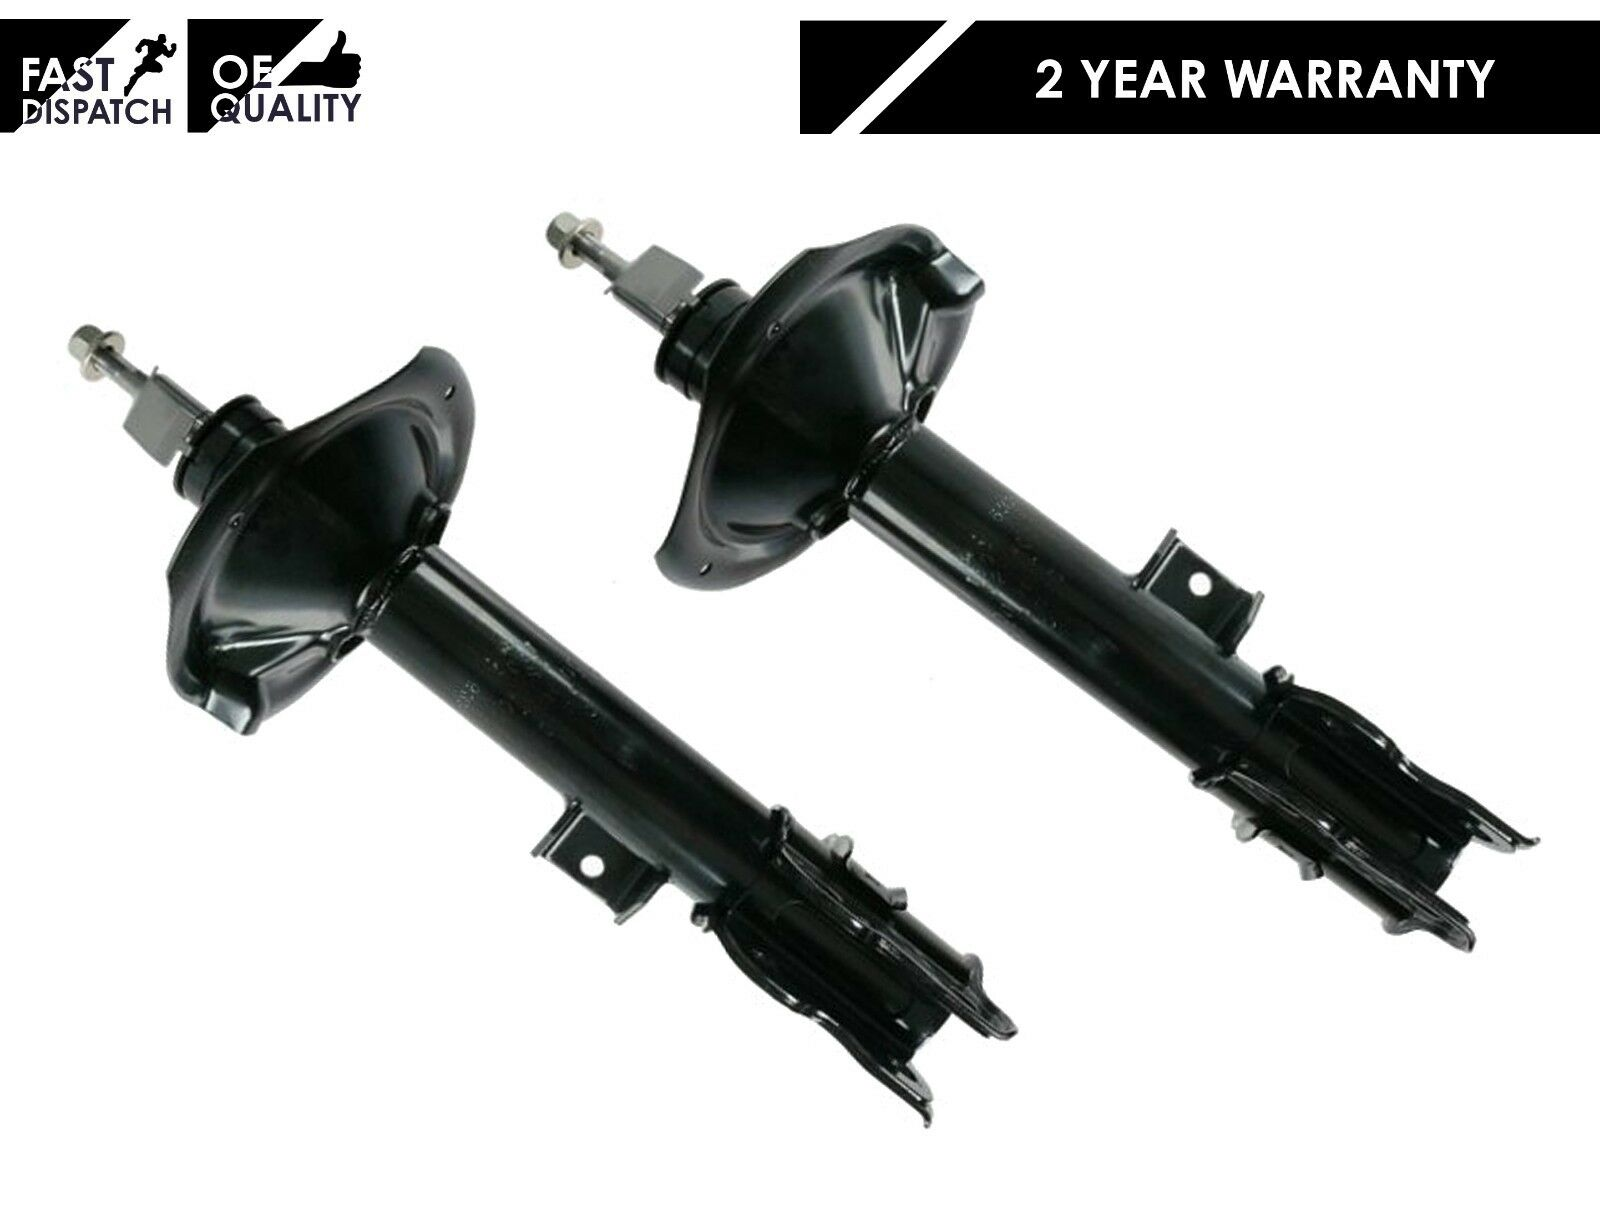 FOR NISSAN XTRAIL T30 FRONT SUSPENSION SHOCK ABSORBER SHOCKER X-TRAIL LEFT RIGHT